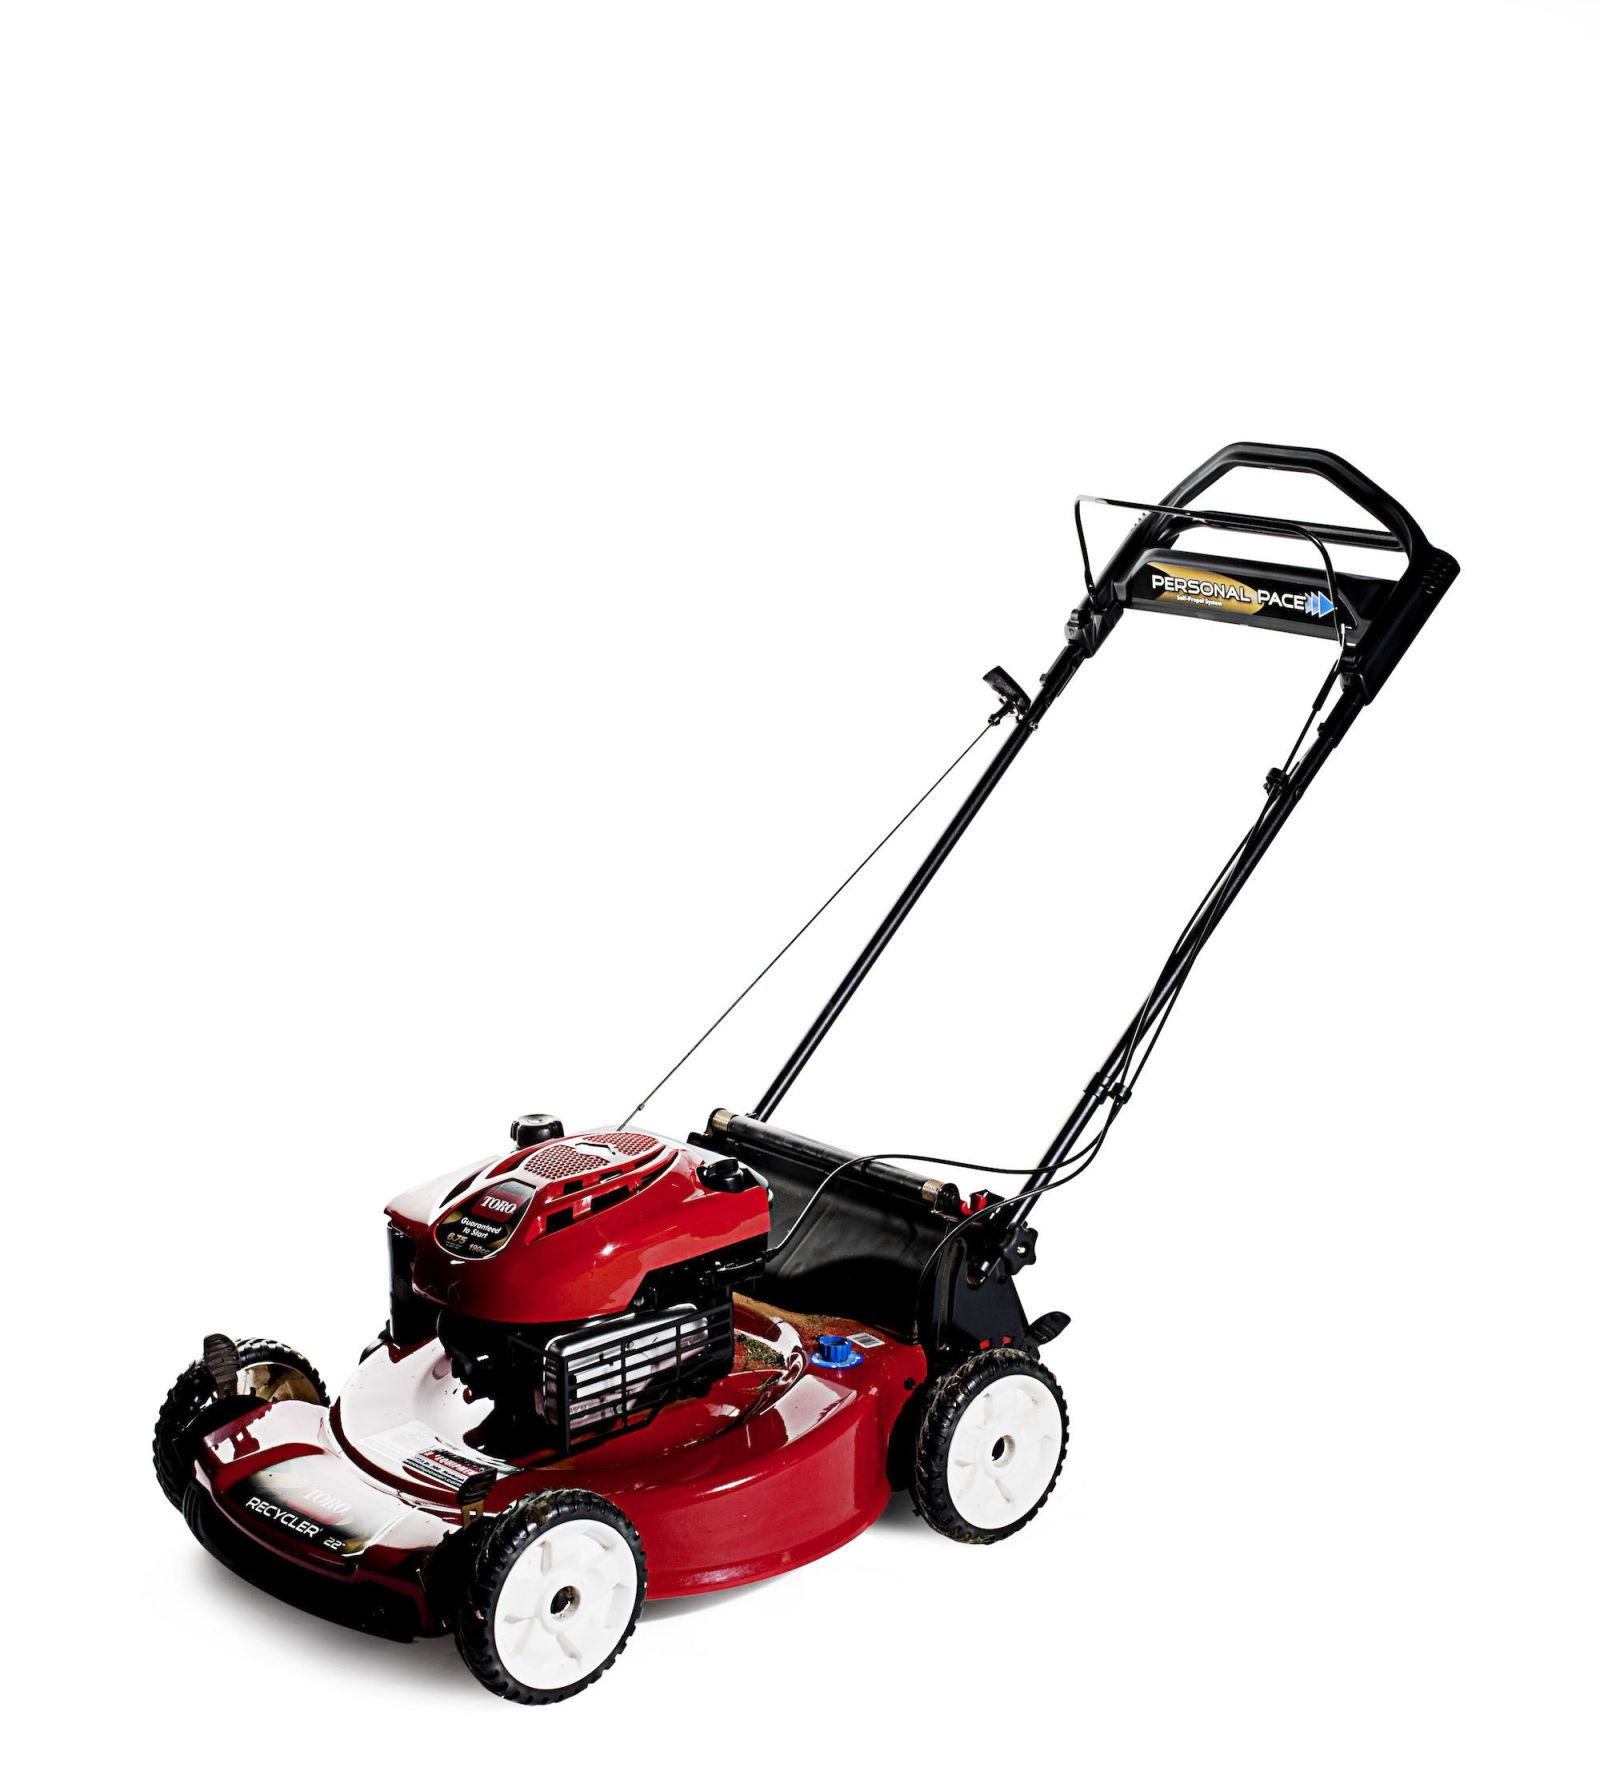 The Best Electric And Gas Mowers For Any Type Of Yard With Images Best Lawn Mower Lawn Mower Mower